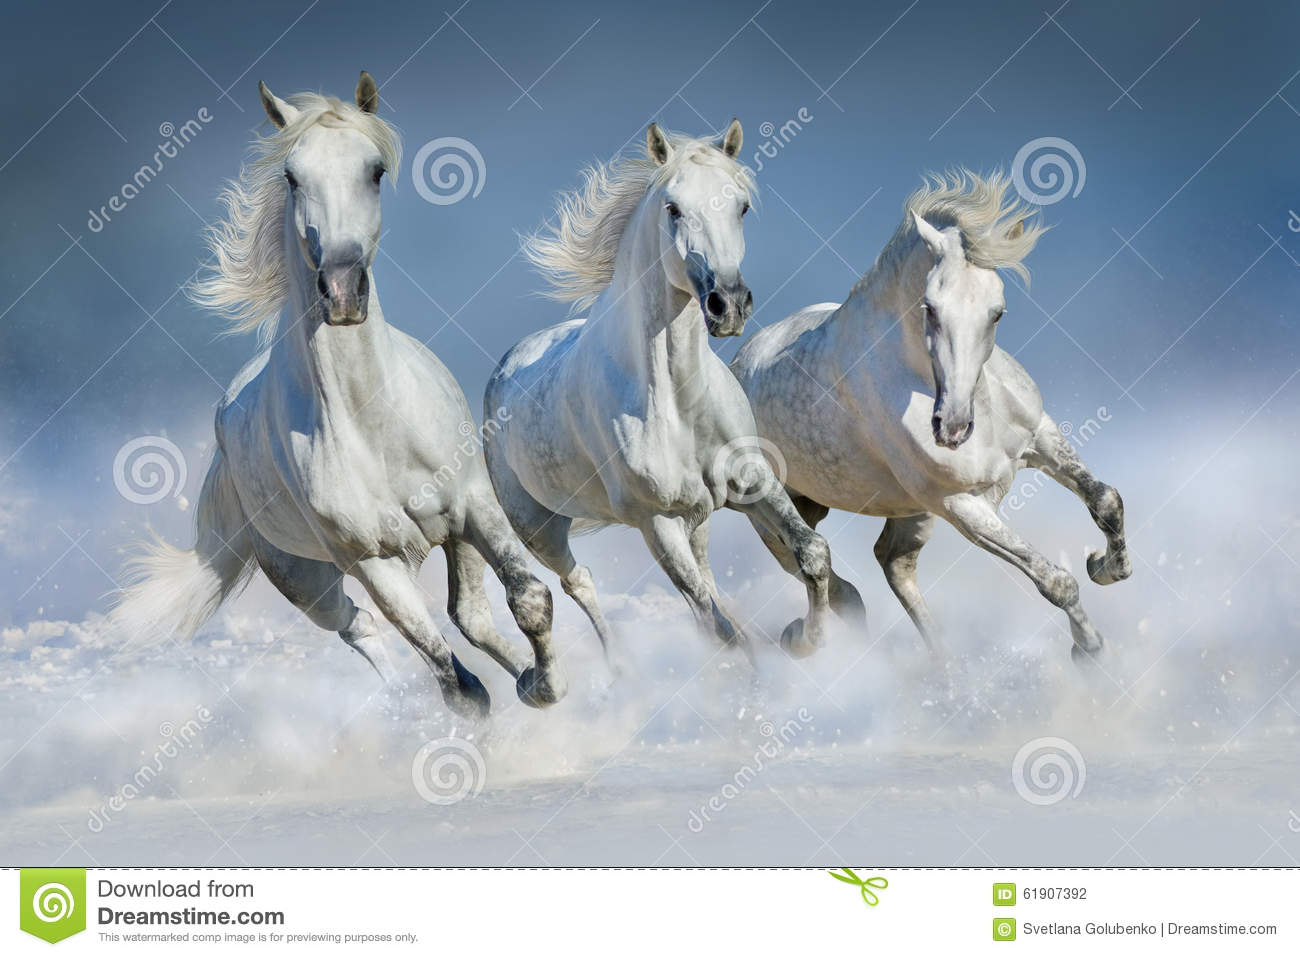 Three White Horse Run In Snow Stock Photo Image Of Color Outdoor 61907392